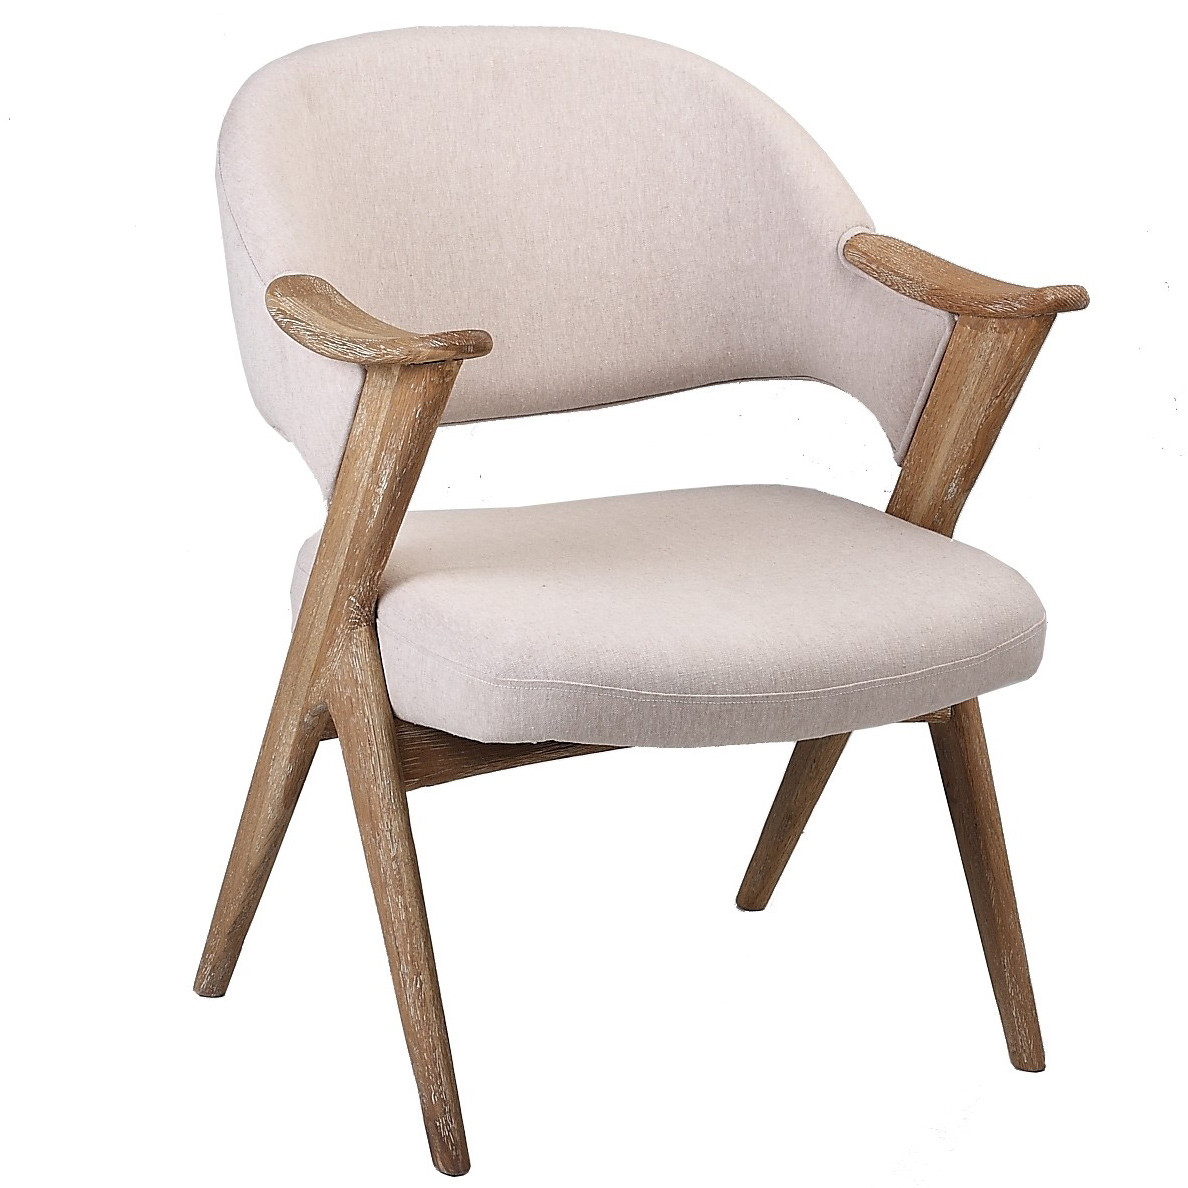 French Wing Upholstered Armchair Linen Traditional Cream  : 1 from www.50han.com size 1188 x 1188 jpeg 207kB